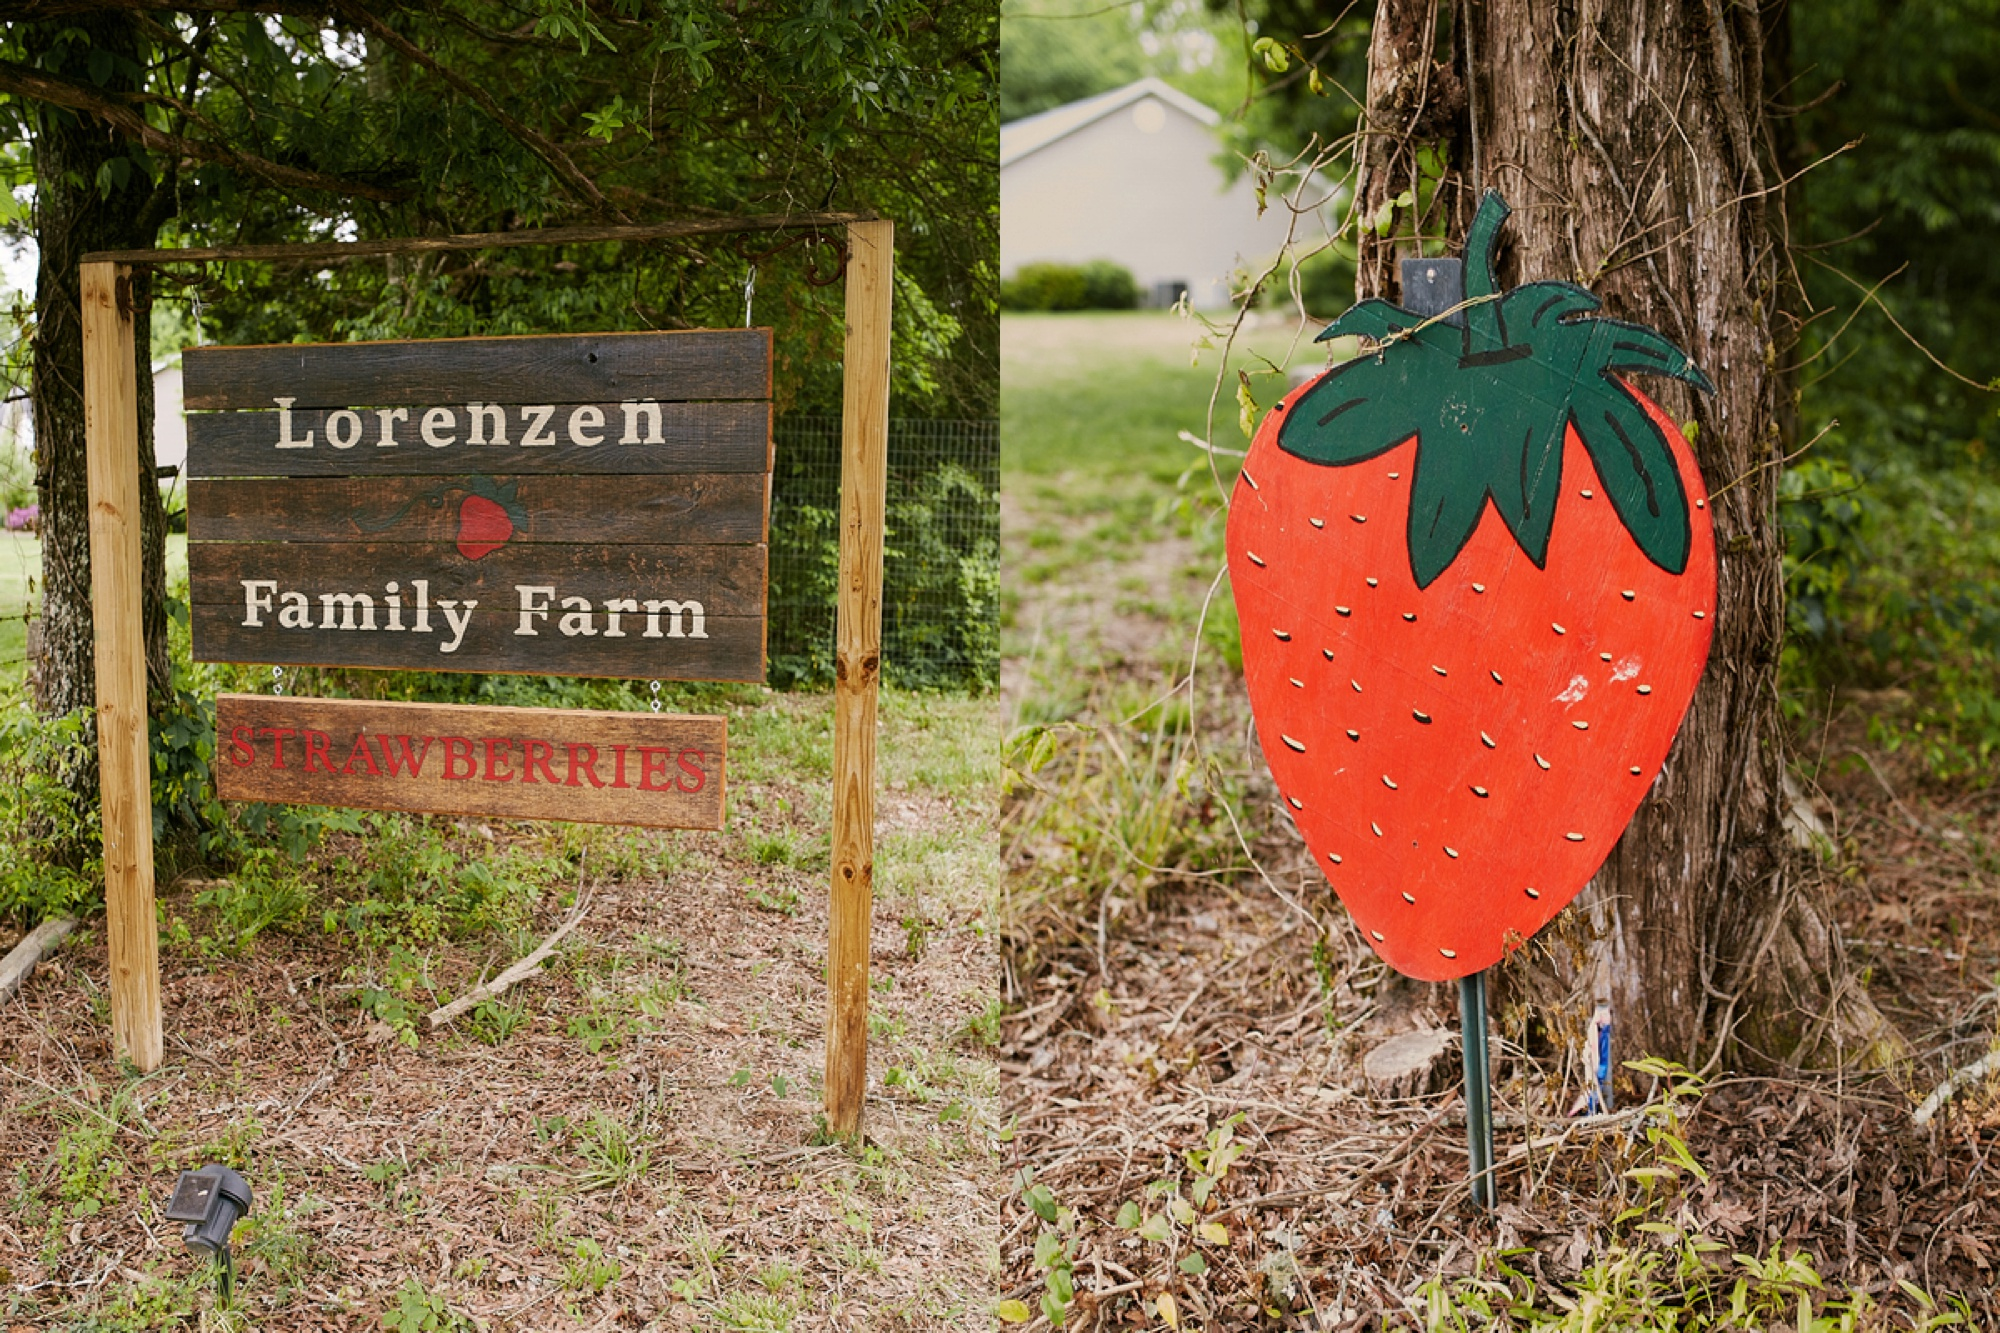 Tennessee Strawberry Field Anniversary Session, engagement session ideas, styled shoots